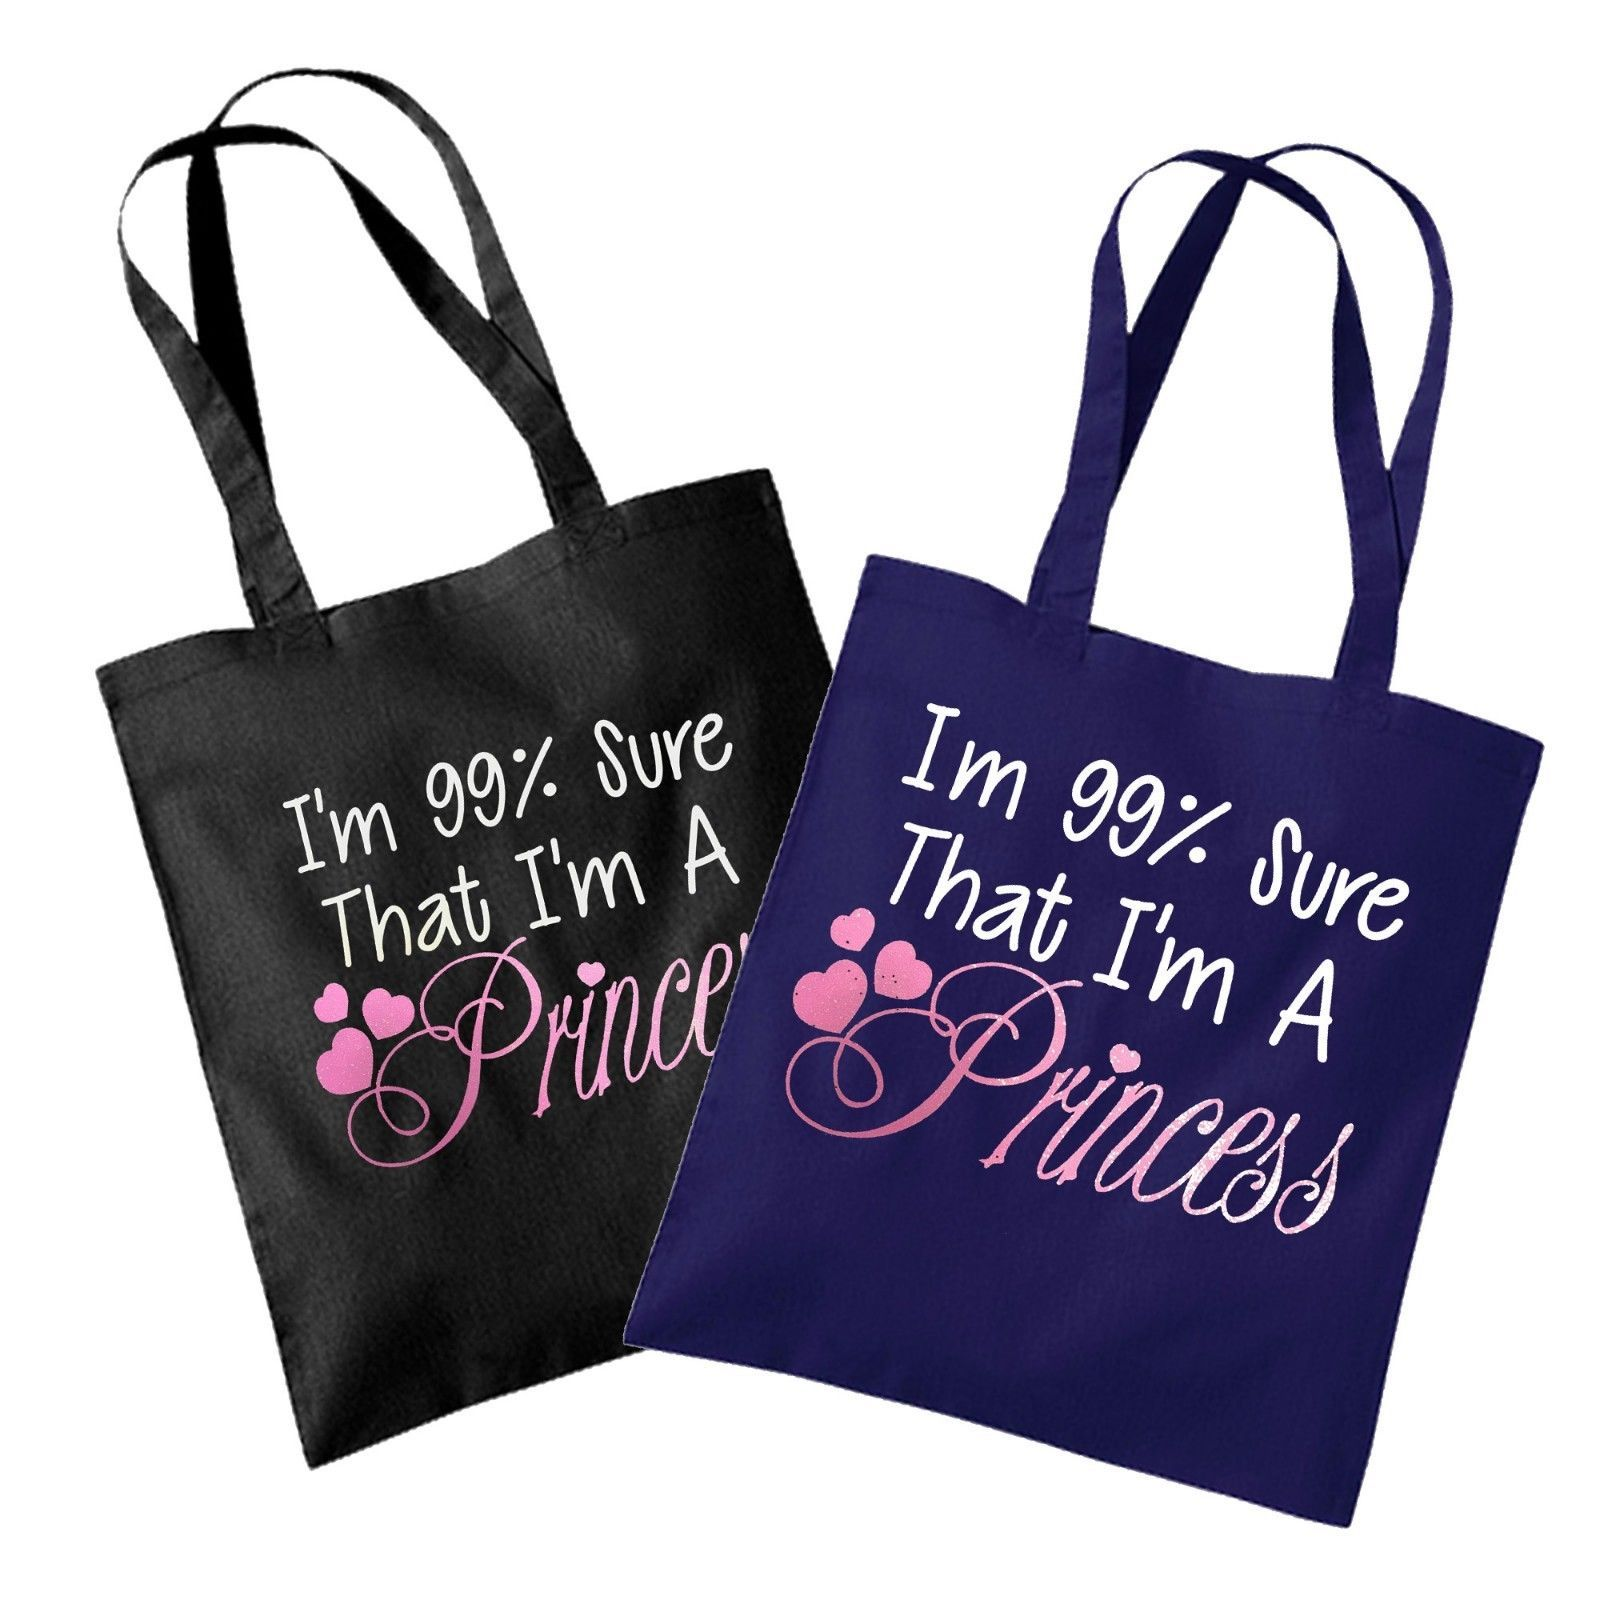 39bb398ba607 I m 99% Sure That I m A Princess Shopping Tote Bag